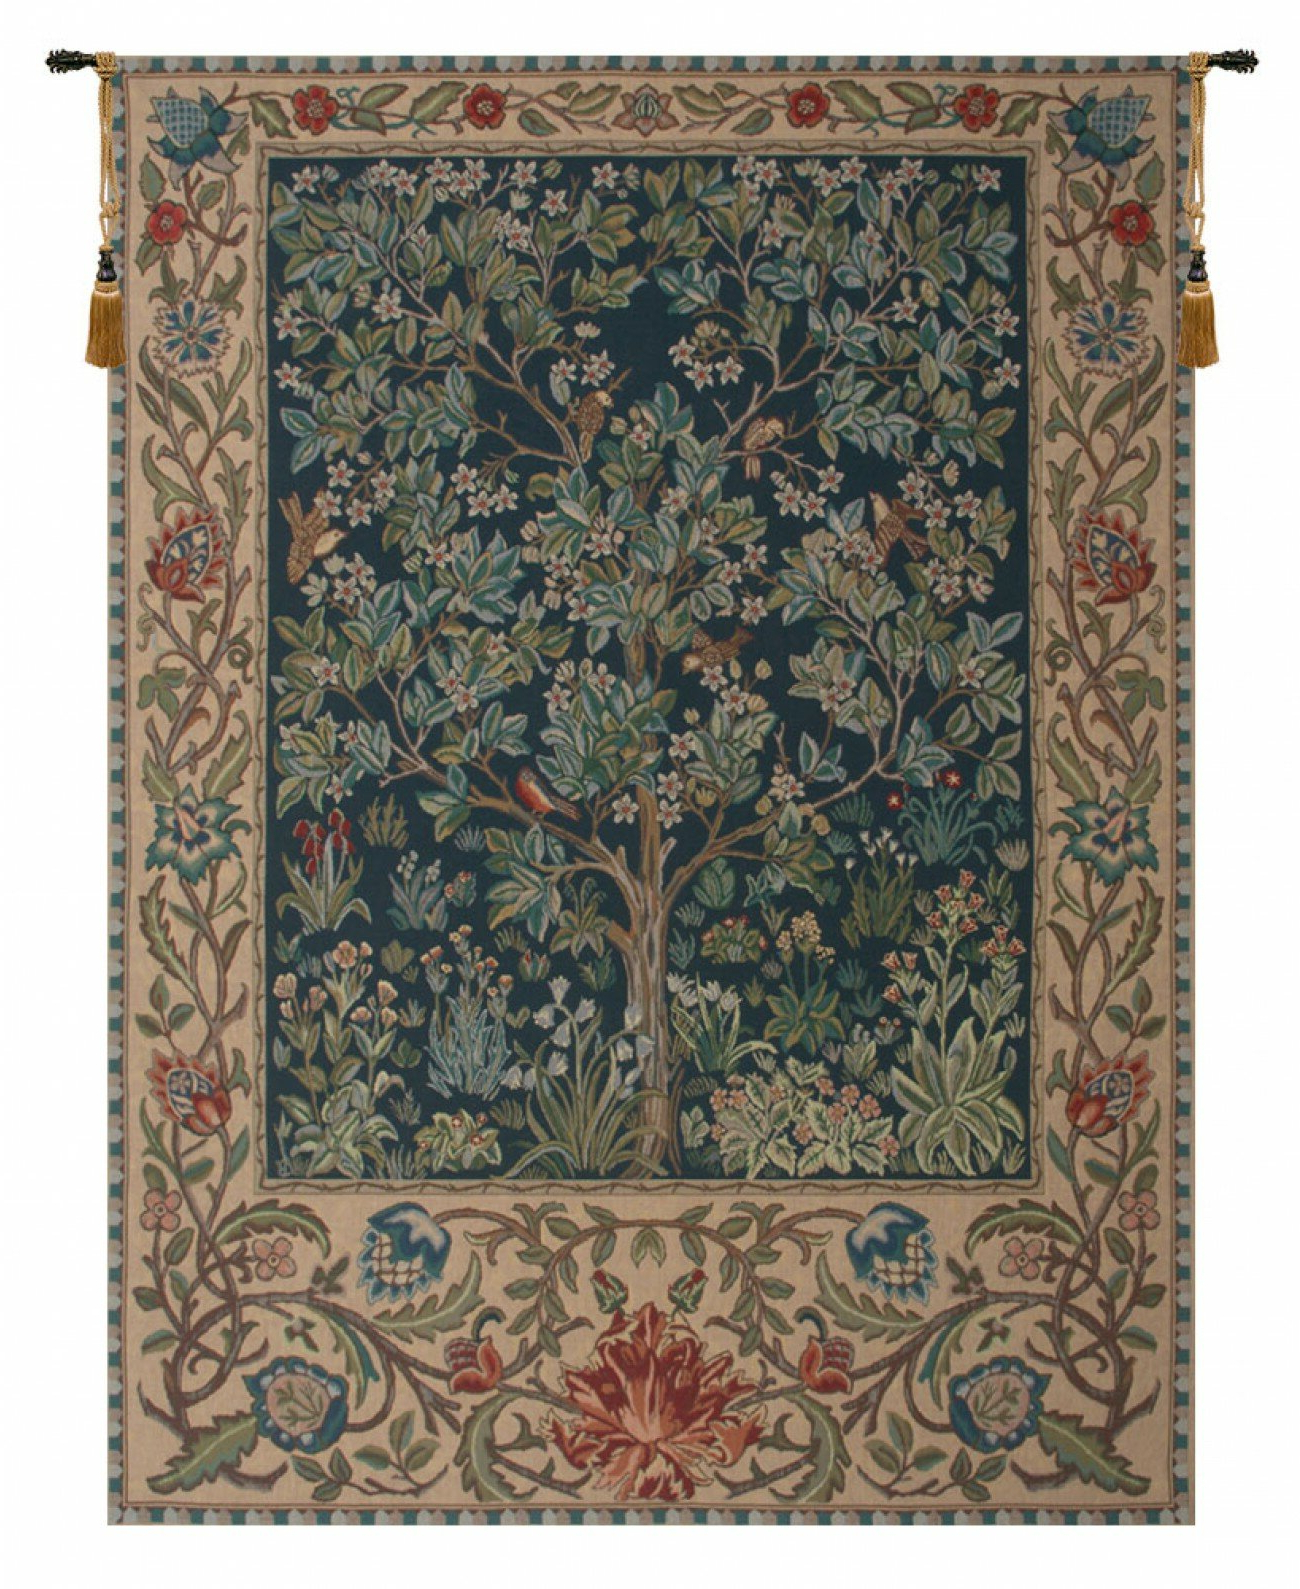 Well Known Blended Fabric Tree Of Life, William Morris Wall Hangings For Tree Of Life, William Morris Wall Hanging (View 4 of 20)